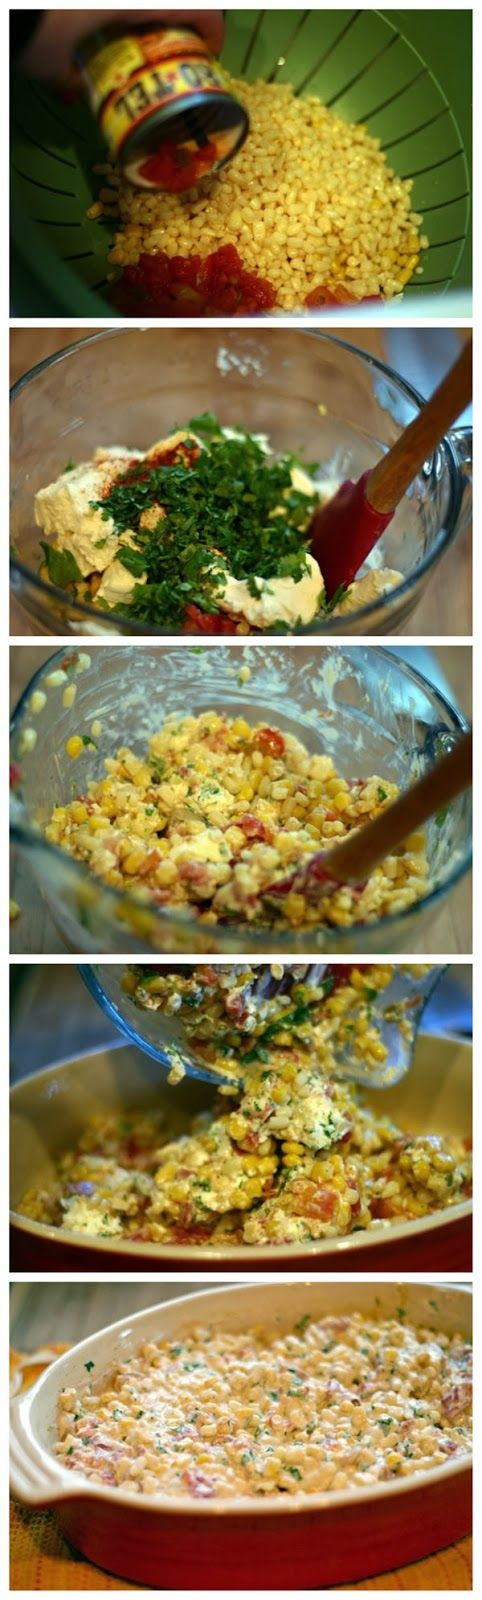 Creamy Corn Rotel Dip or use as a side dish! Been making this for a long time!